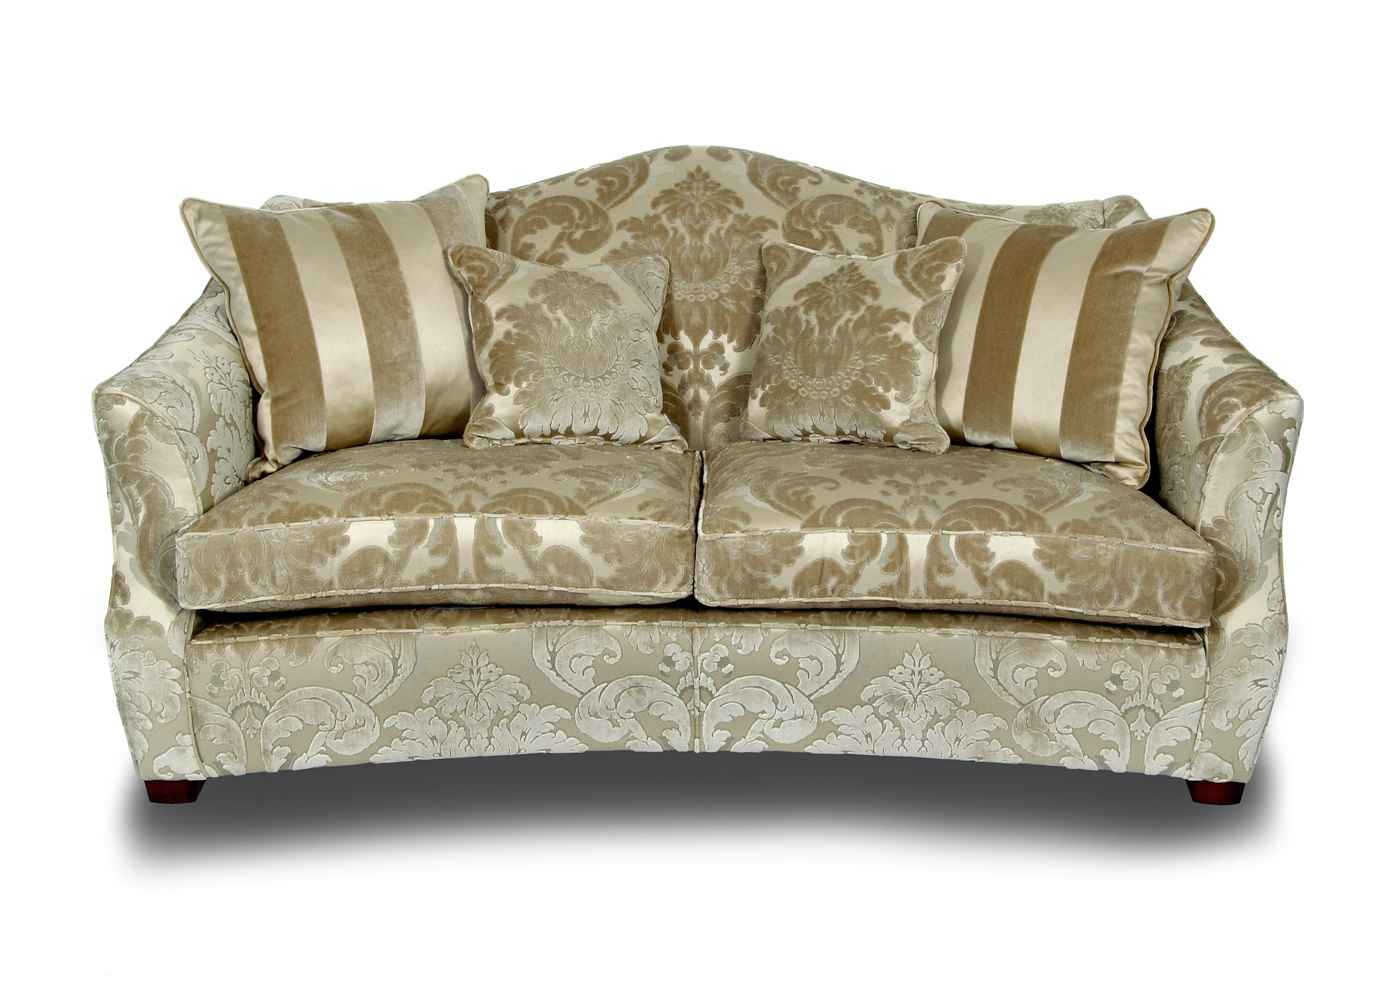 sofa upholstery fabric ideas jackson bed cheap loveseats for small spaces couch and